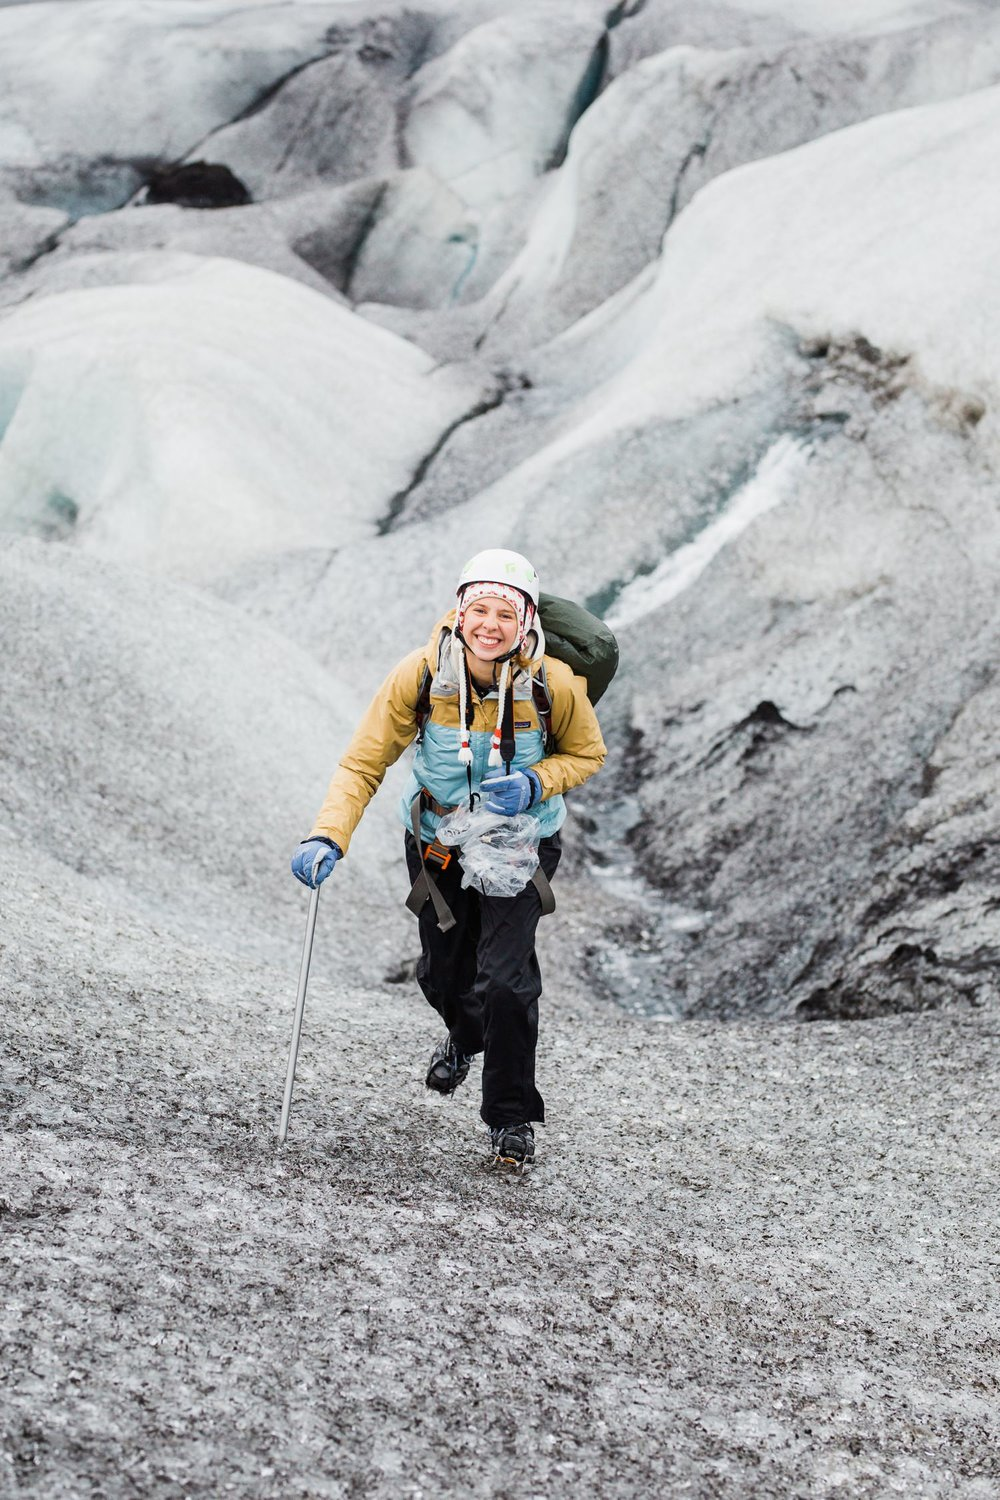 cameron-zegers-travel-photographer-nat-geo-student-expeditions-glacier.jpg